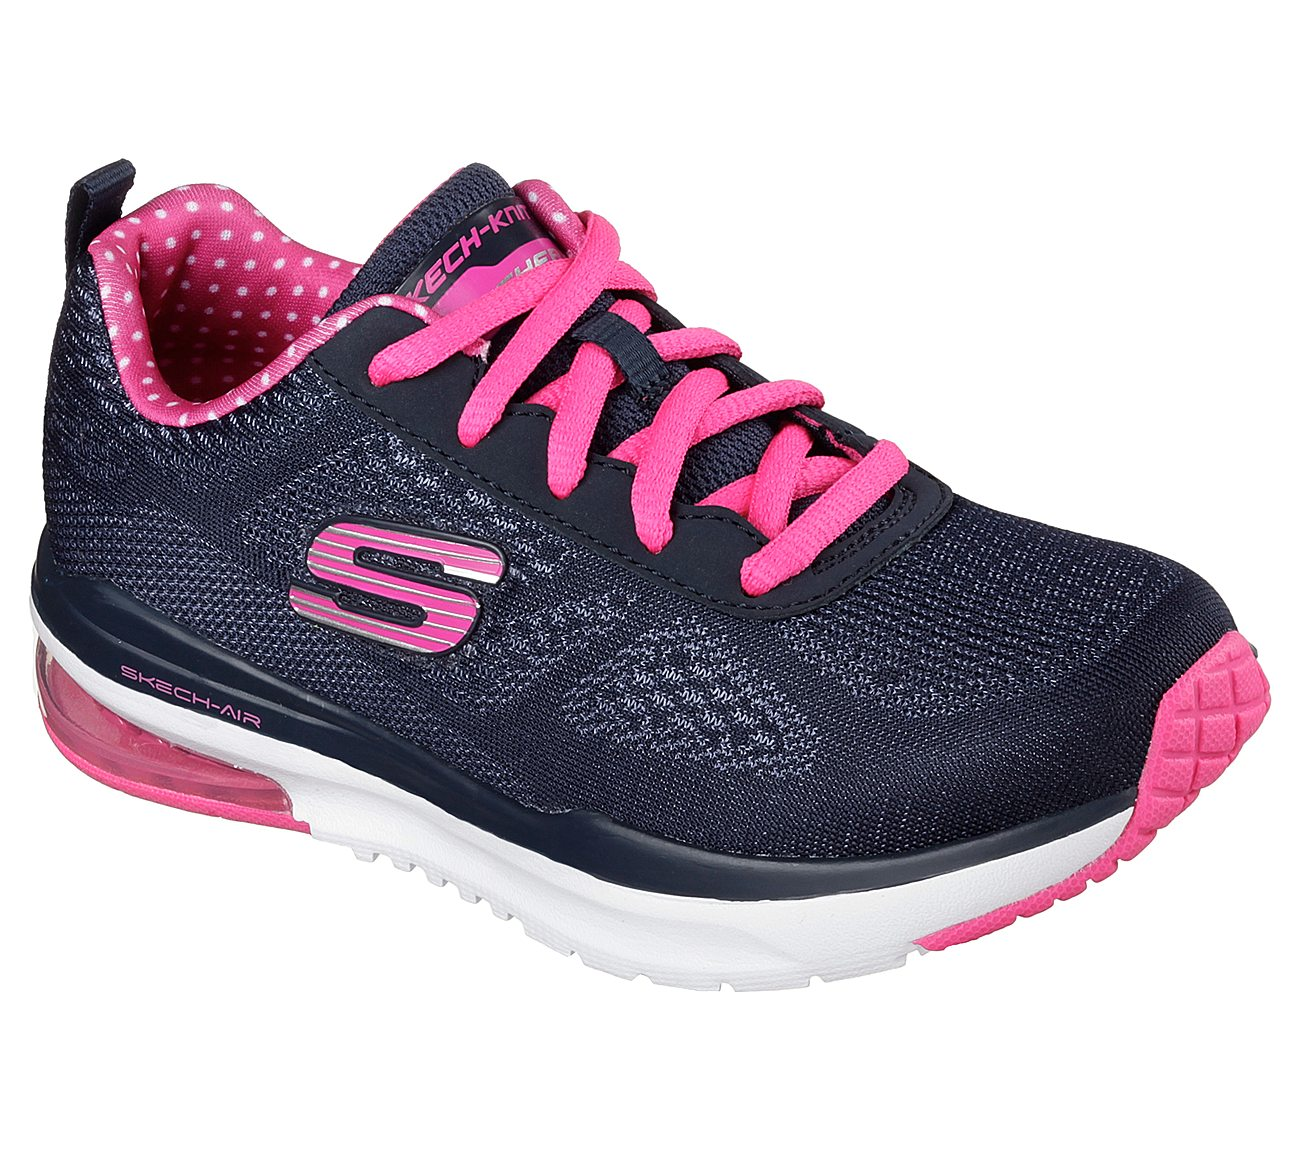 33b0c4c413b Buy SKECHERS Skech-Air Infinity Training Shoes Shoes only $37.00